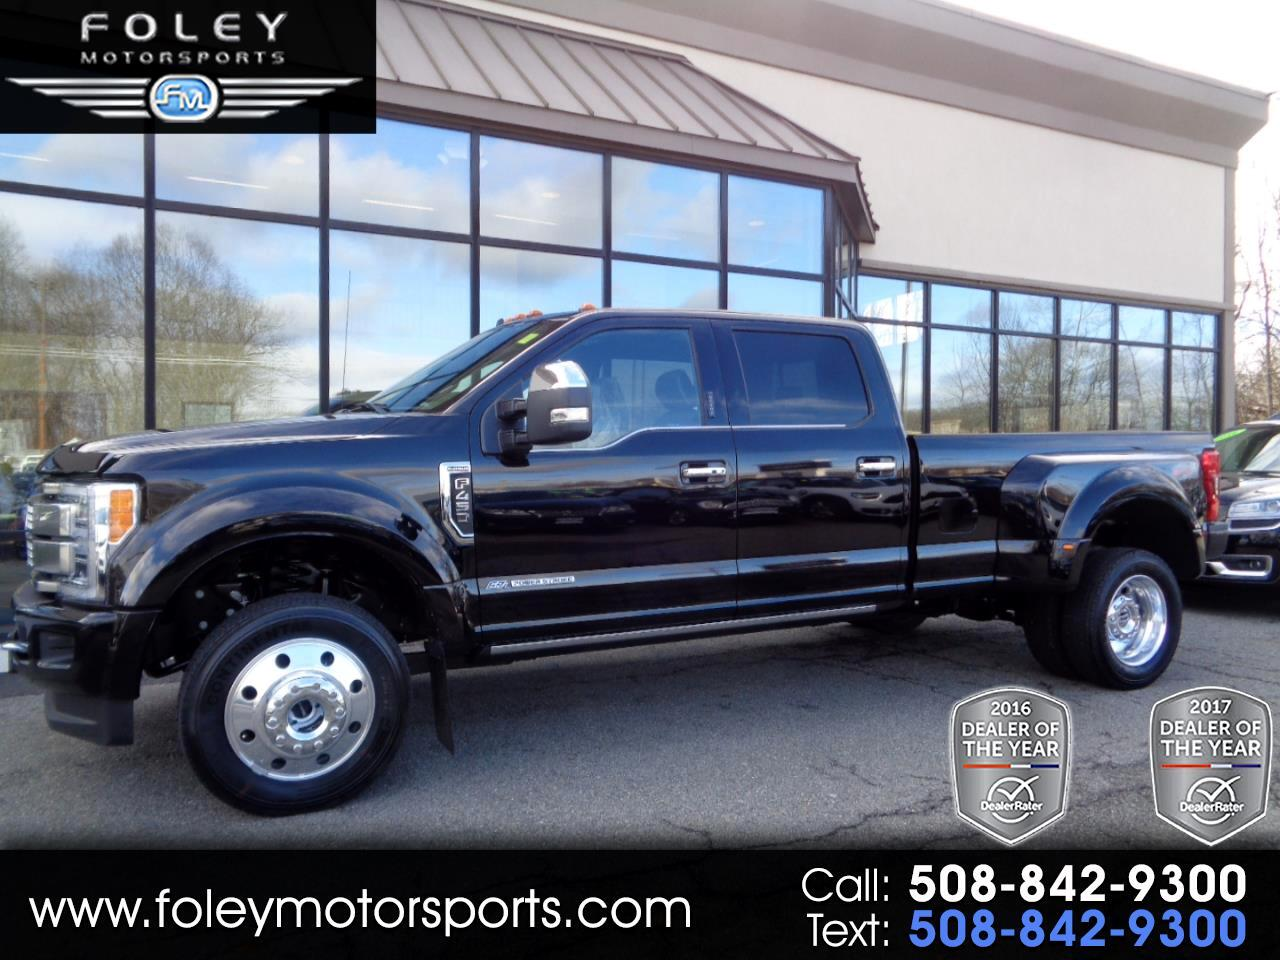 2019 Ford Super Duty F-450 DRW Platinum 4WD Crew Cab 8' Box